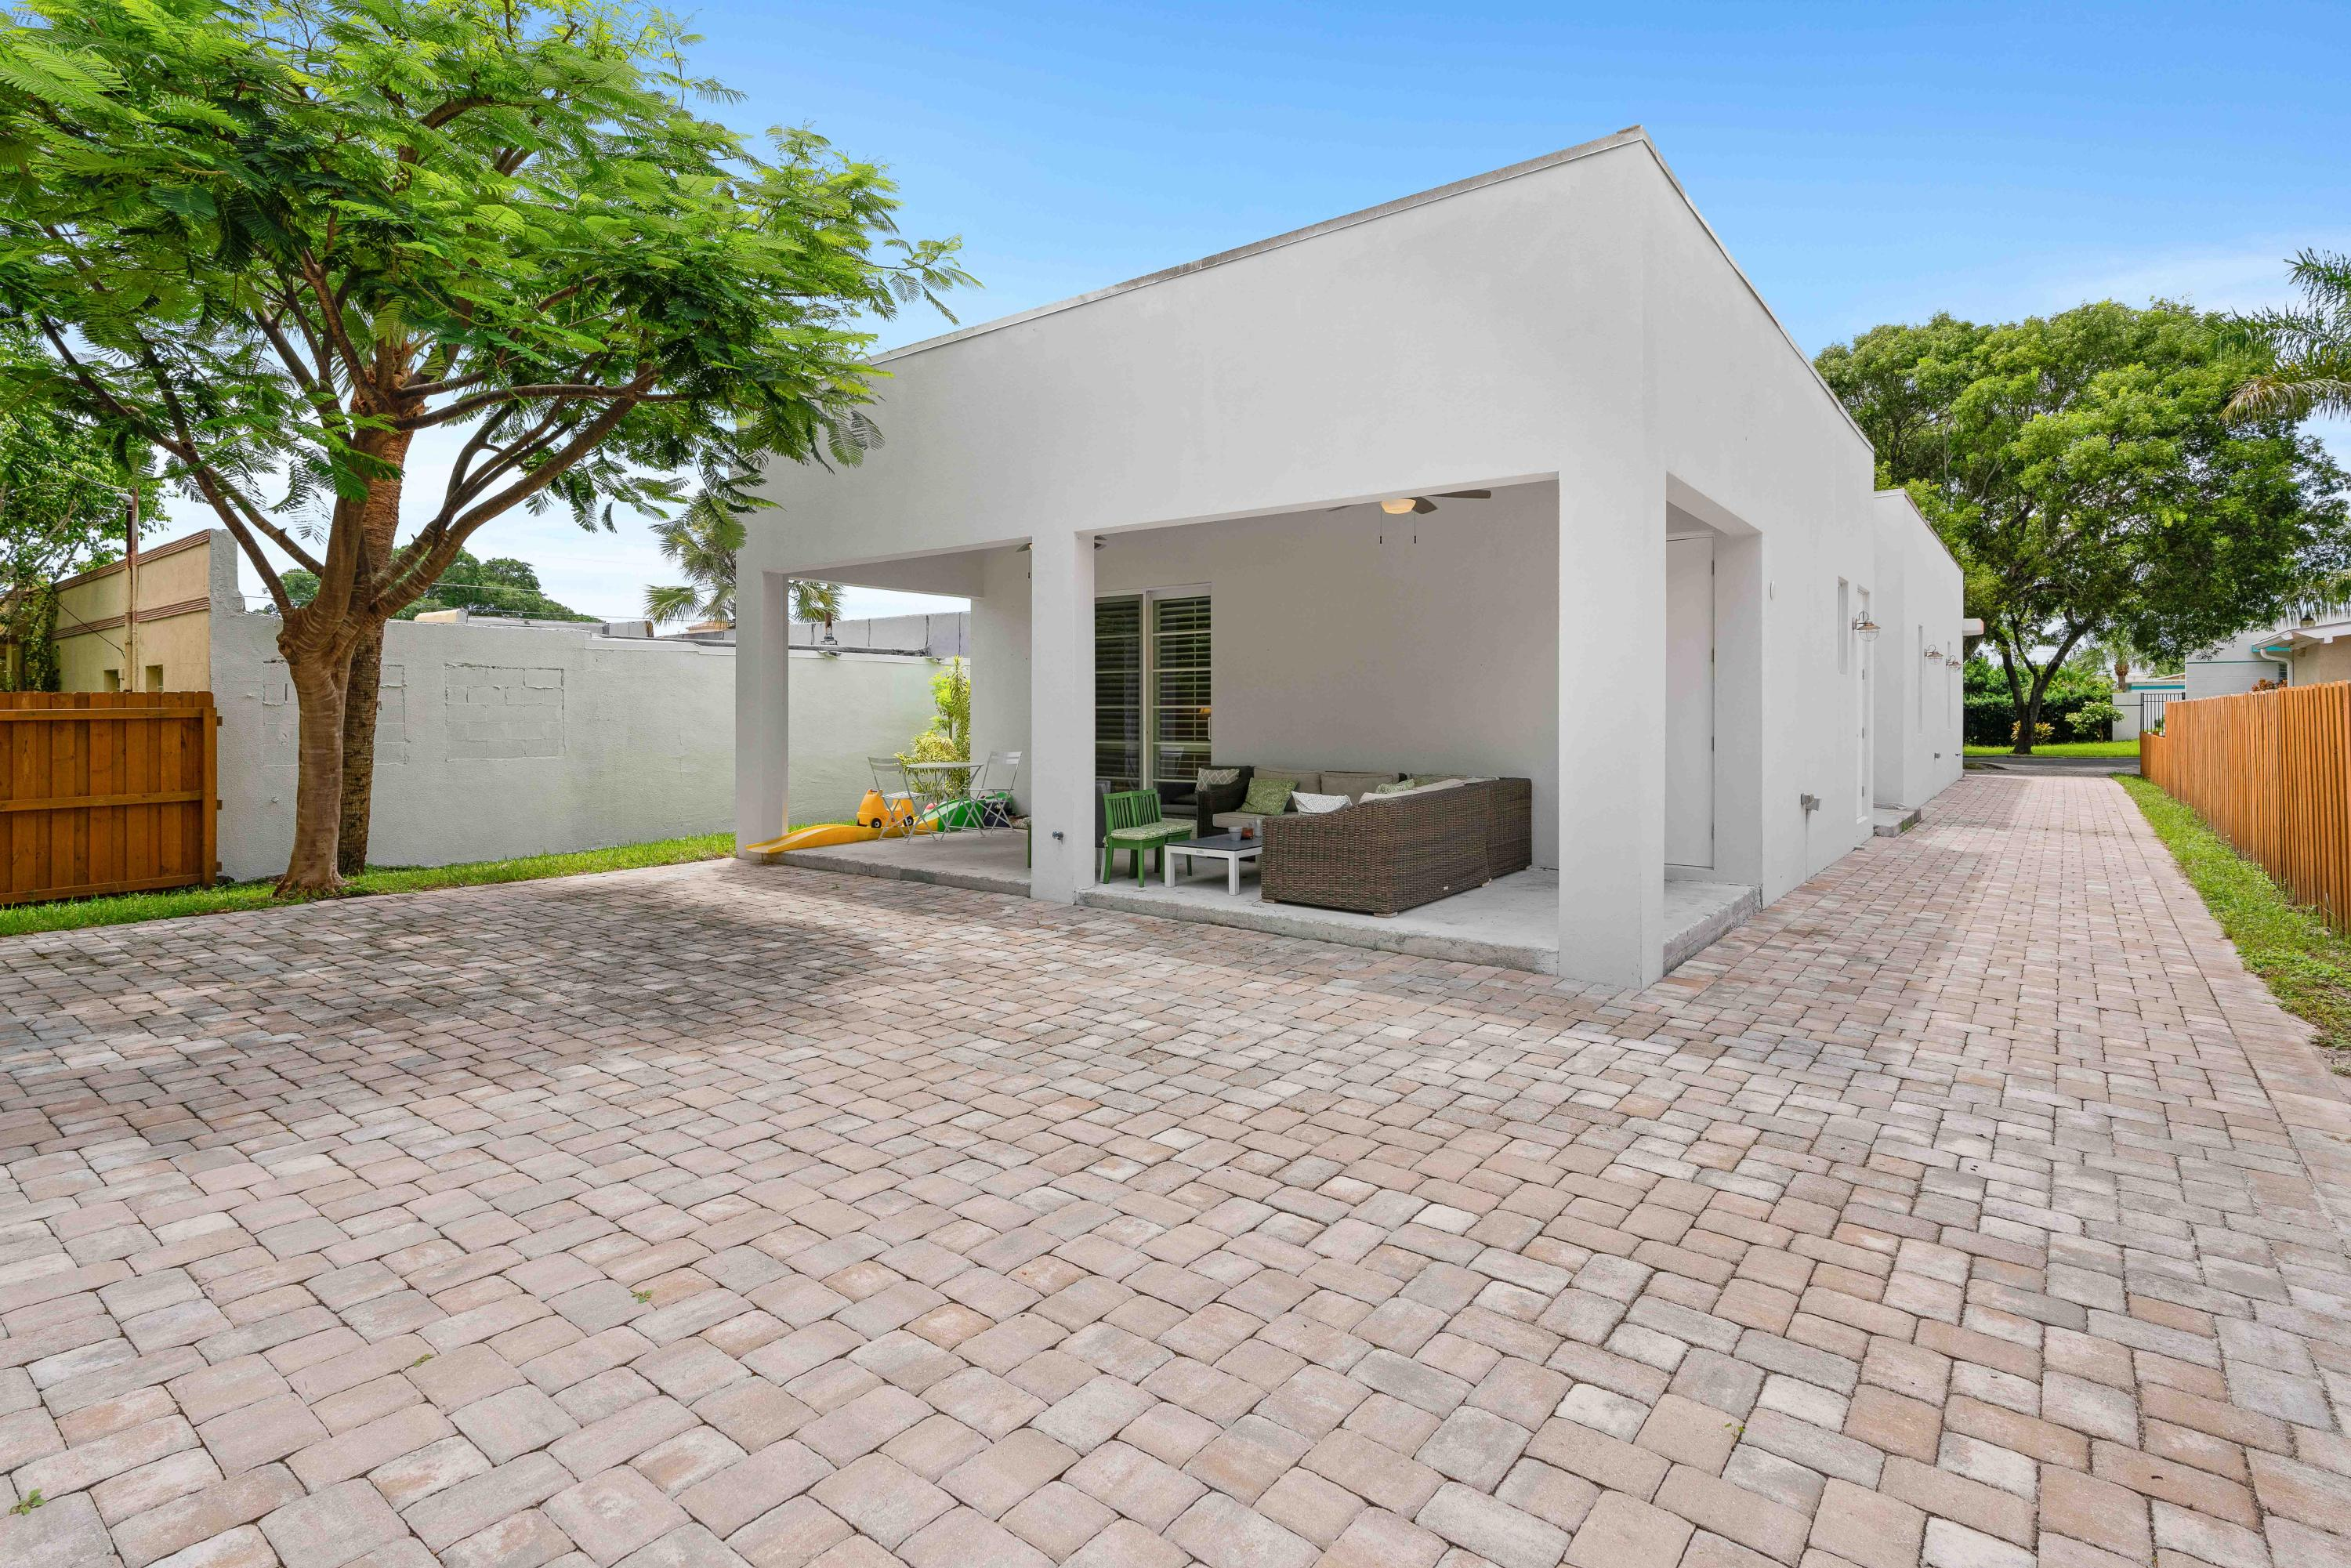 GRANDVIEW HEIGHTS WEST PALM BEACH REAL ESTATE